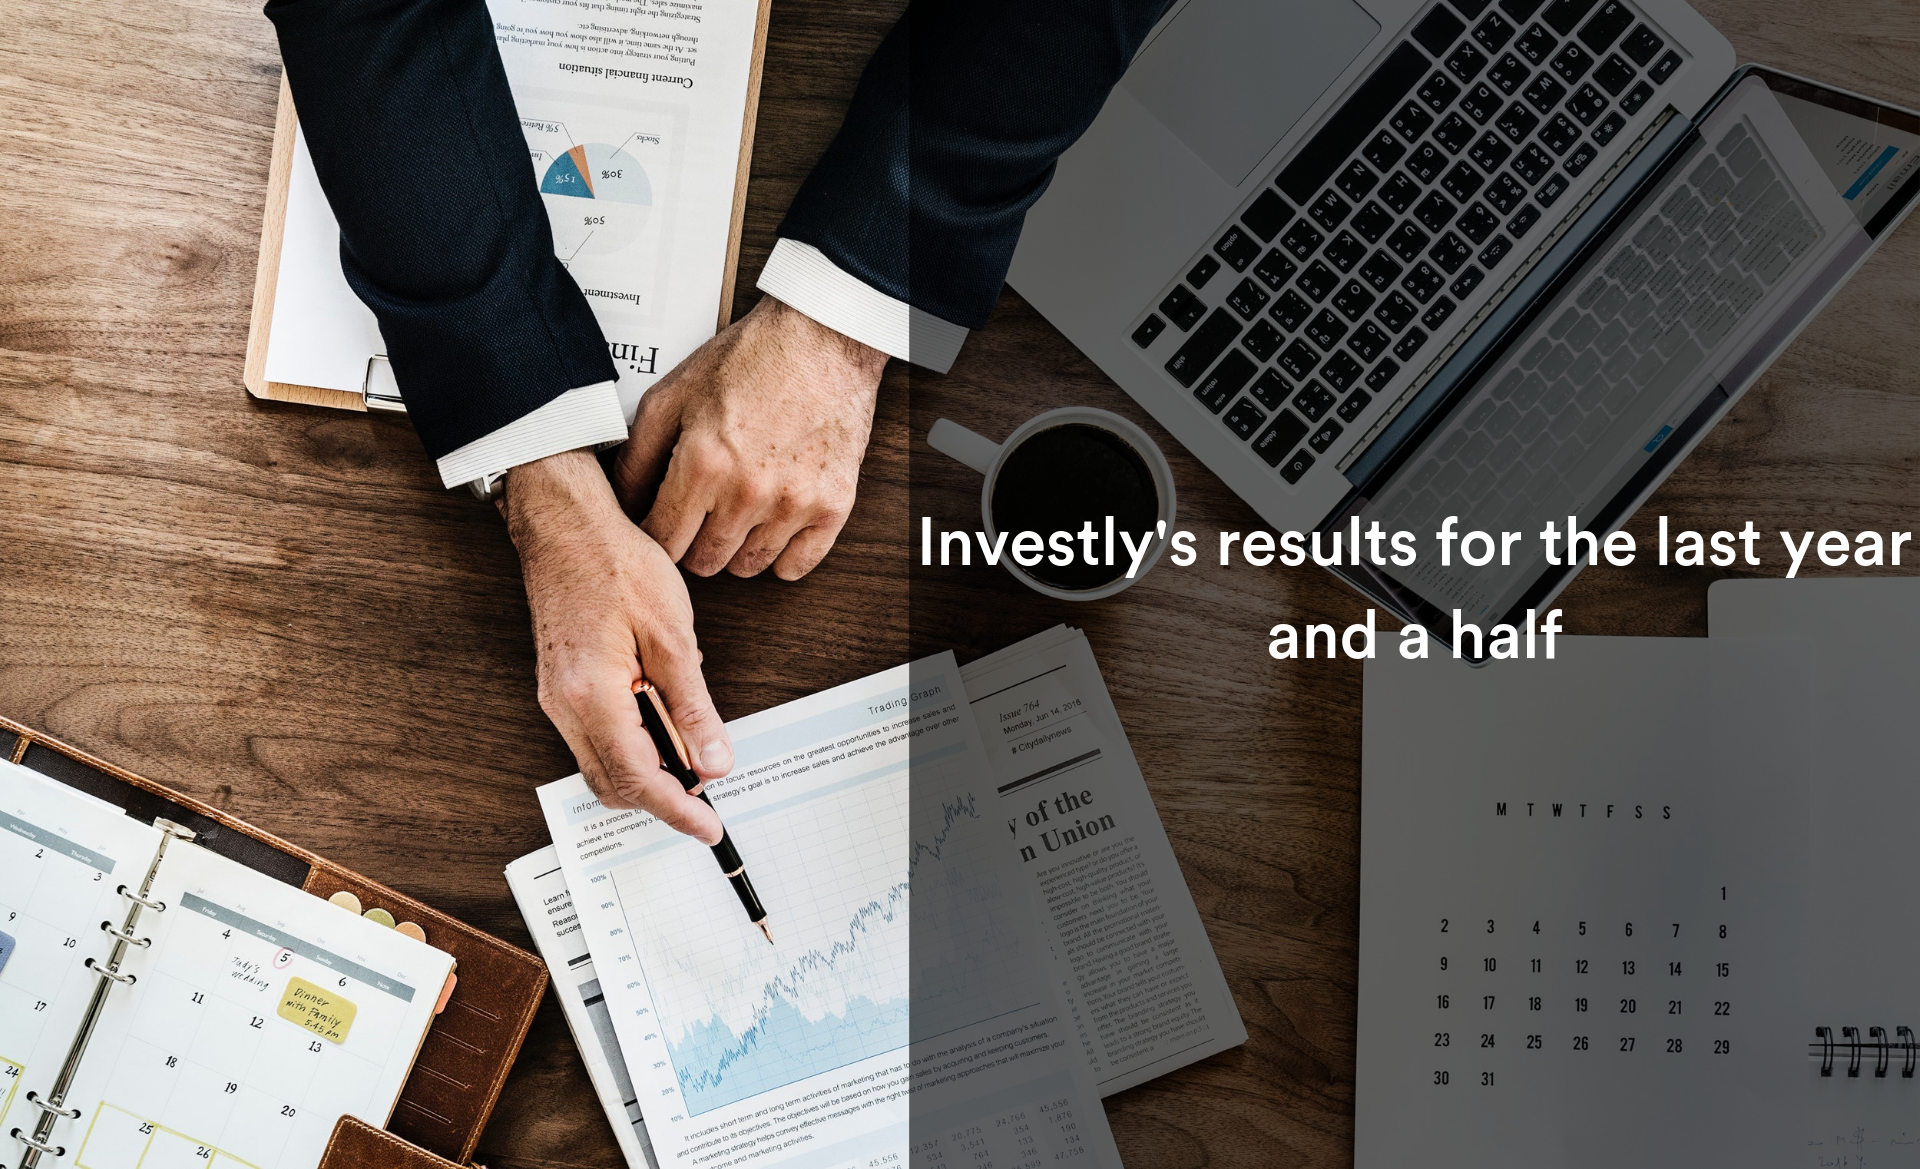 Investlys results for the last year and a half